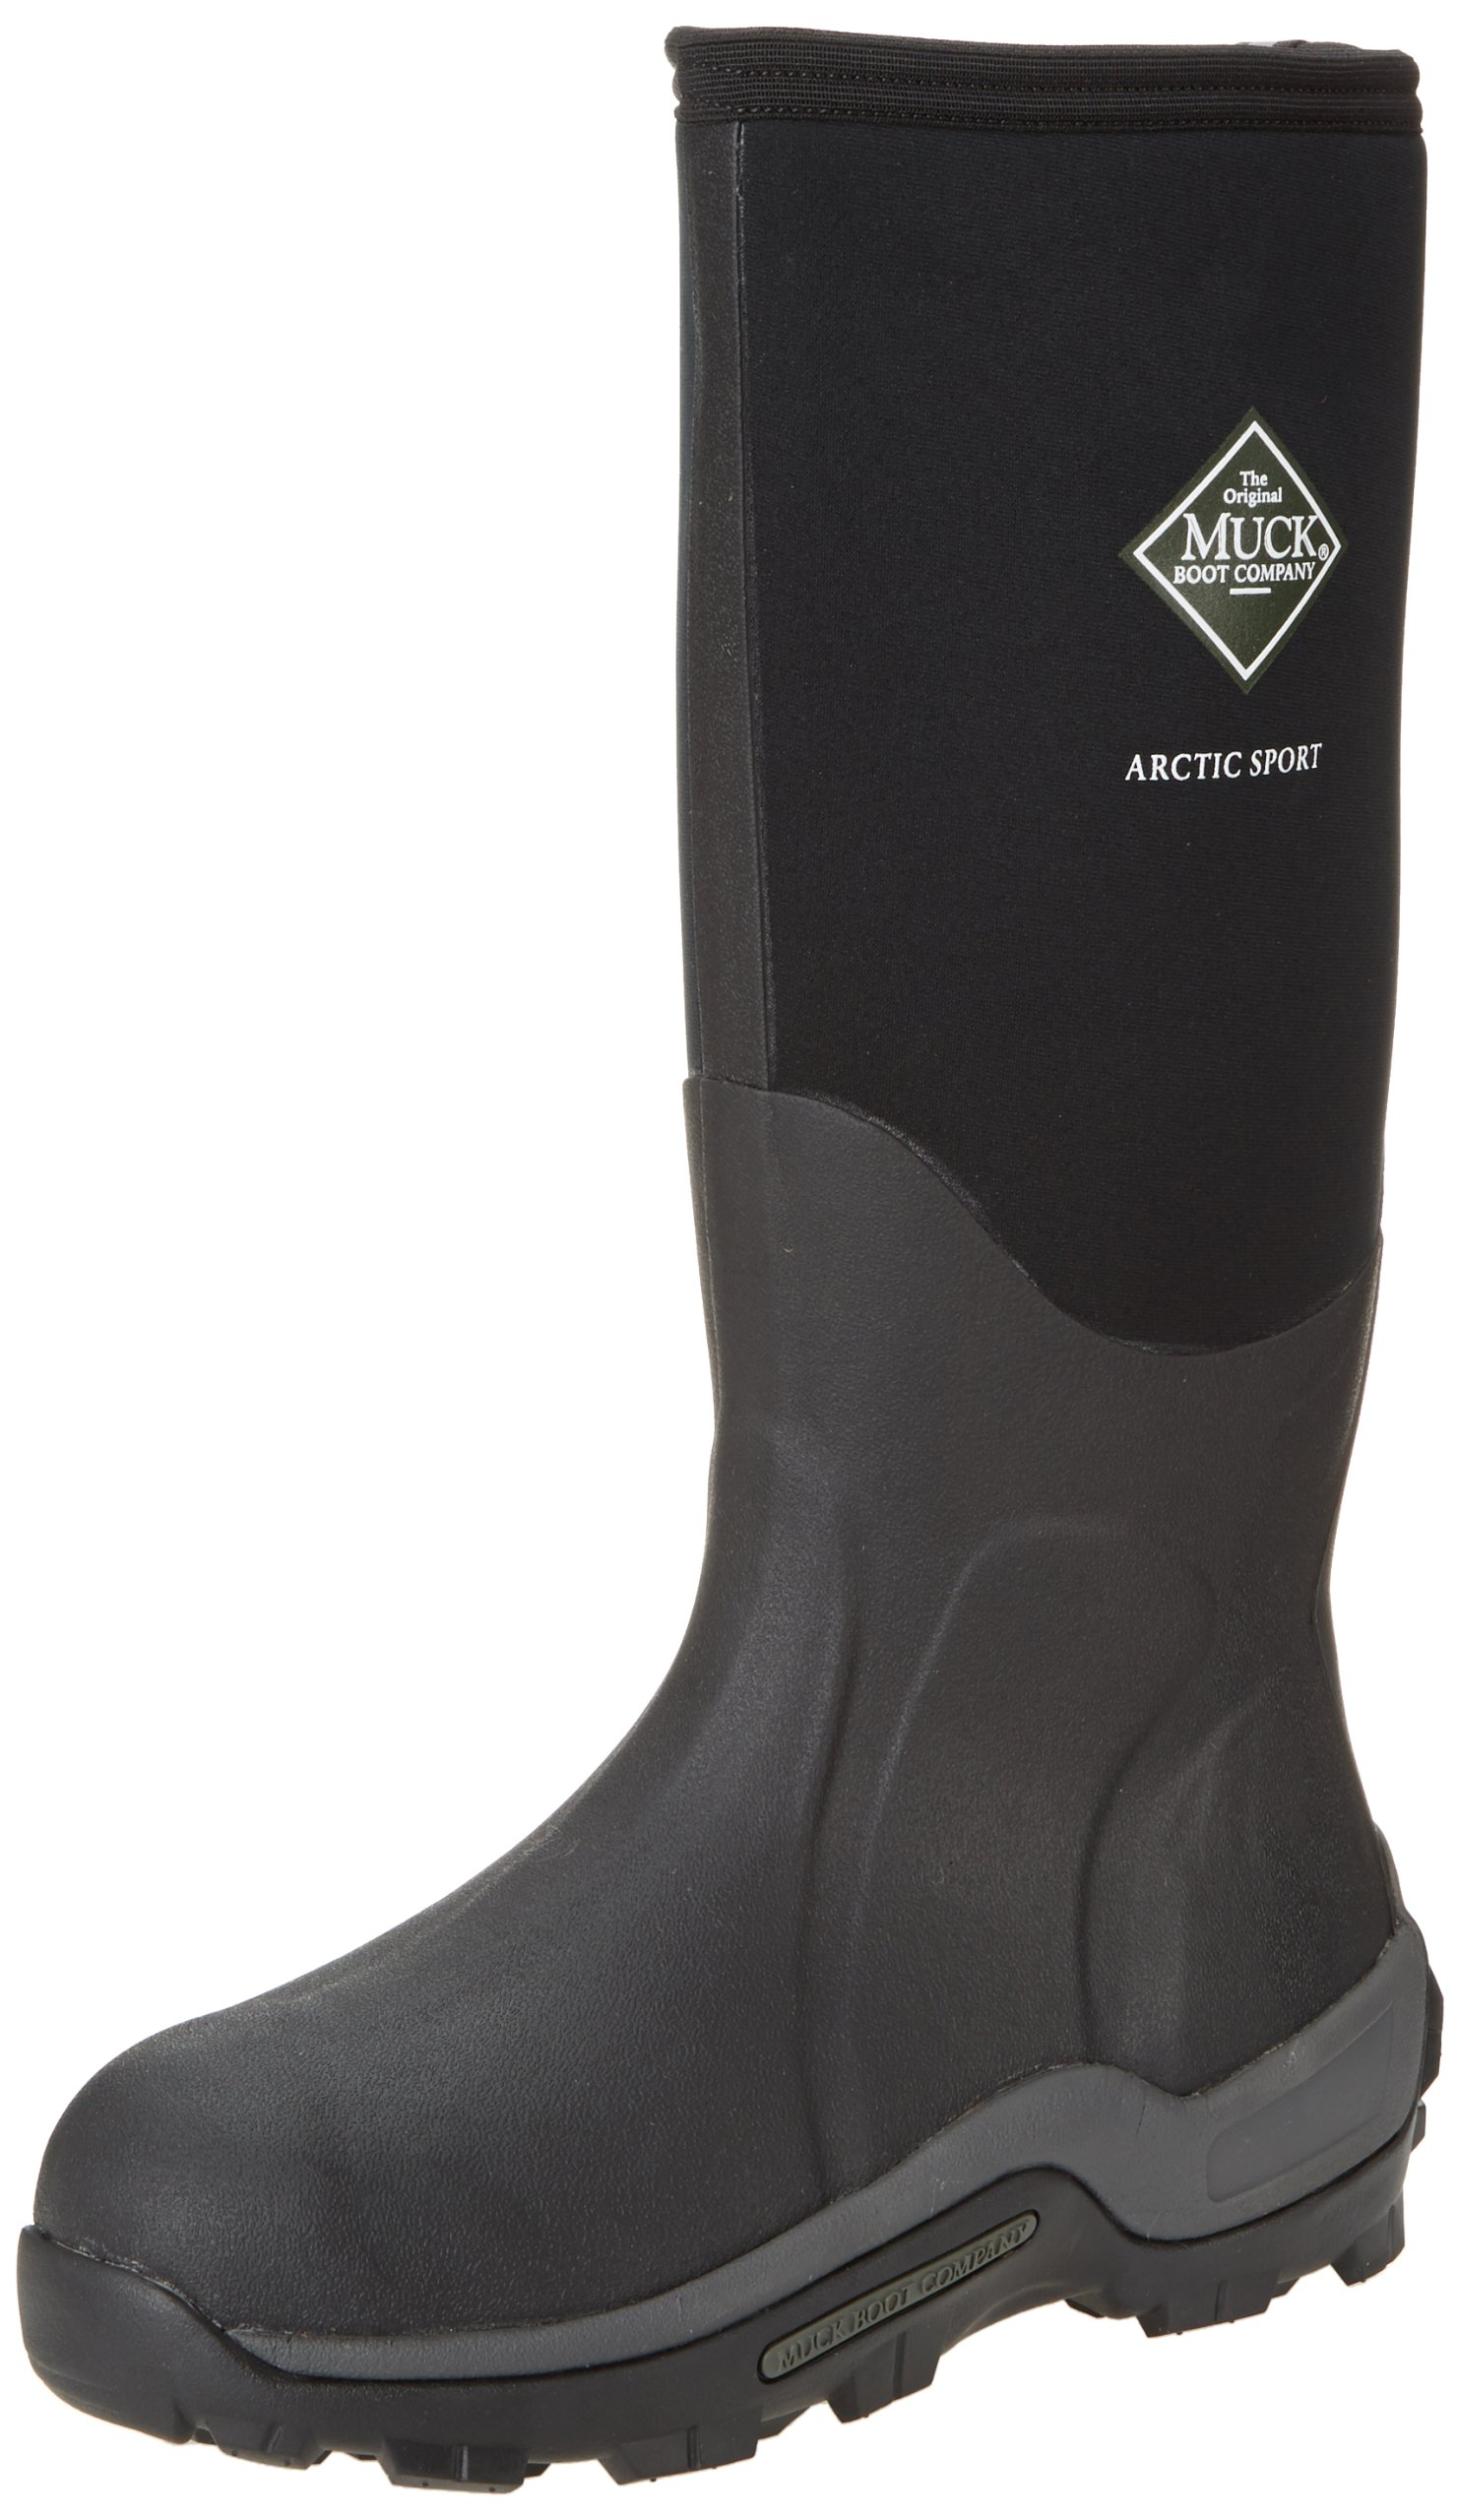 Muck Arctic Sport Rubber High Performance Men's Winter Boots, Black, 9M US by Muck Boot